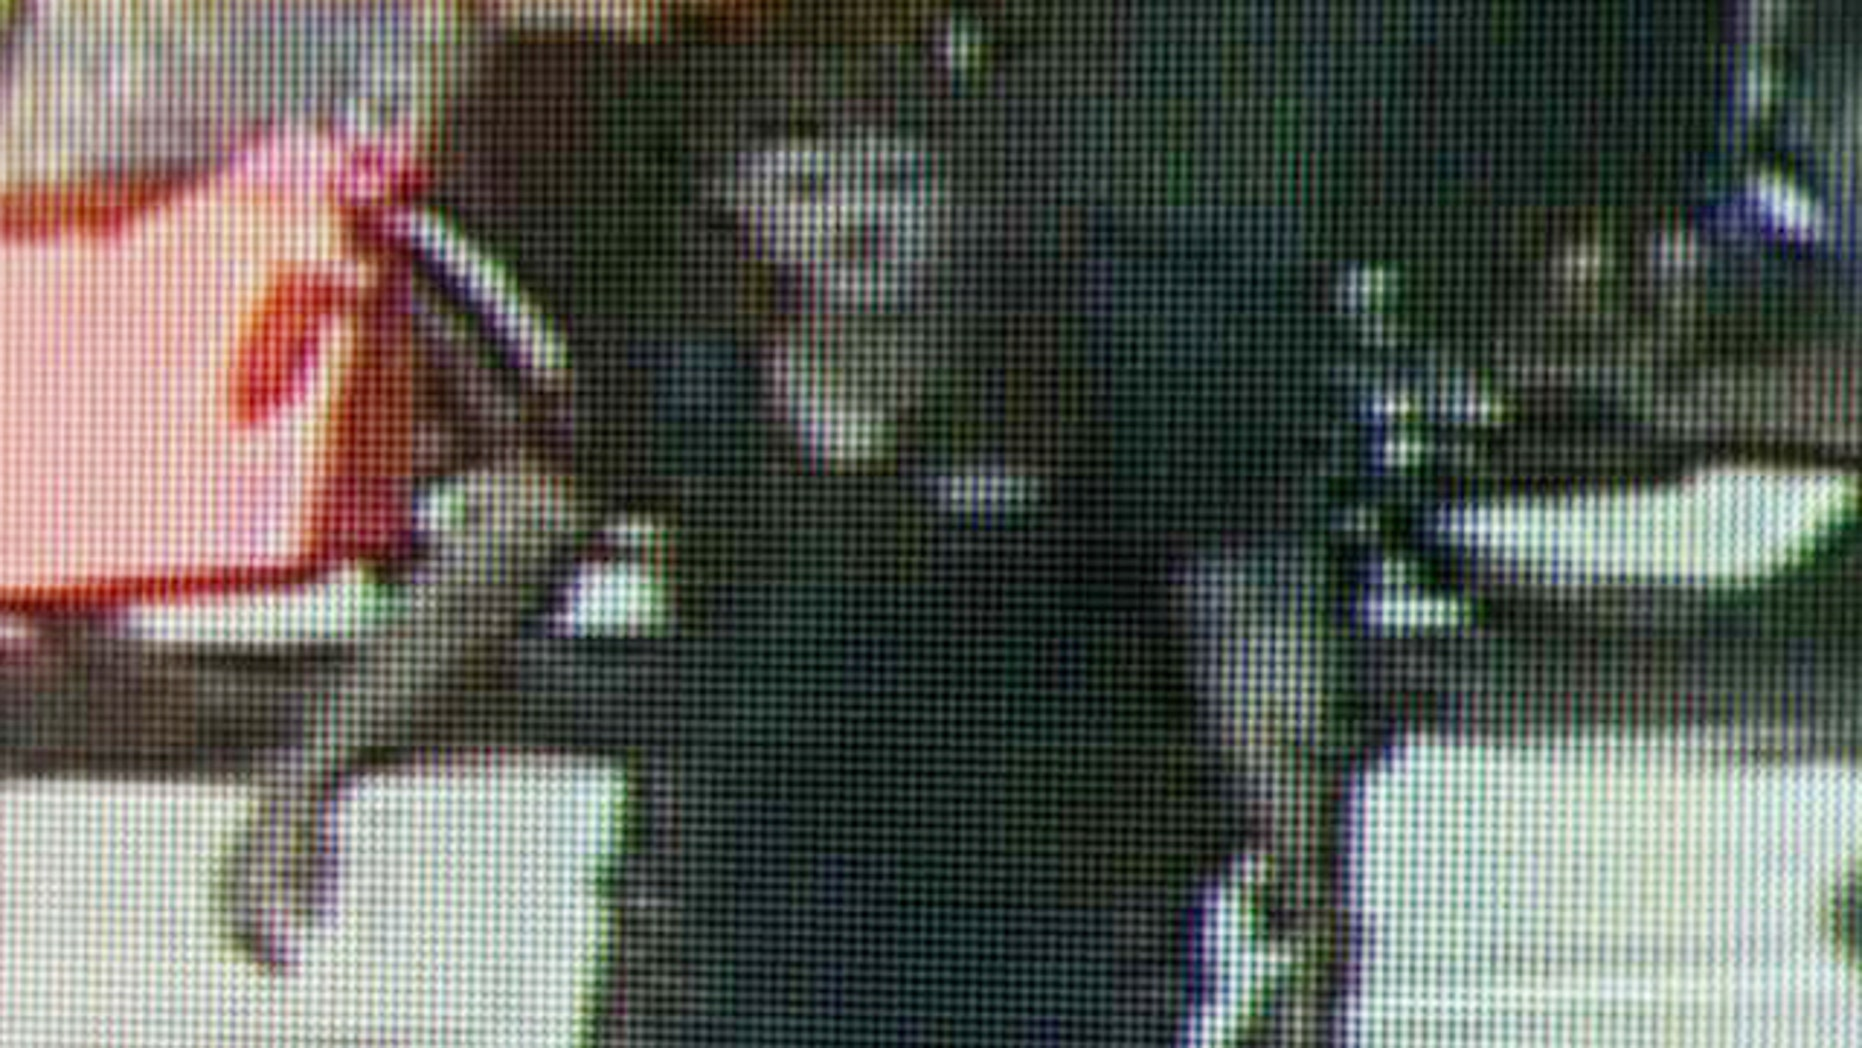 Sept. 12, 2012: This image taken from surveillance video and provided by the New York City Police Department shows a man believed to have mugged and sexually assaulted a 73 year old woman in New York's Central Park. The woman was attacked about 11 a.m. while bird watching near the park's tranquil Strawberry Fields that serves as a memorial to John Lennon. (AP/NYPD)